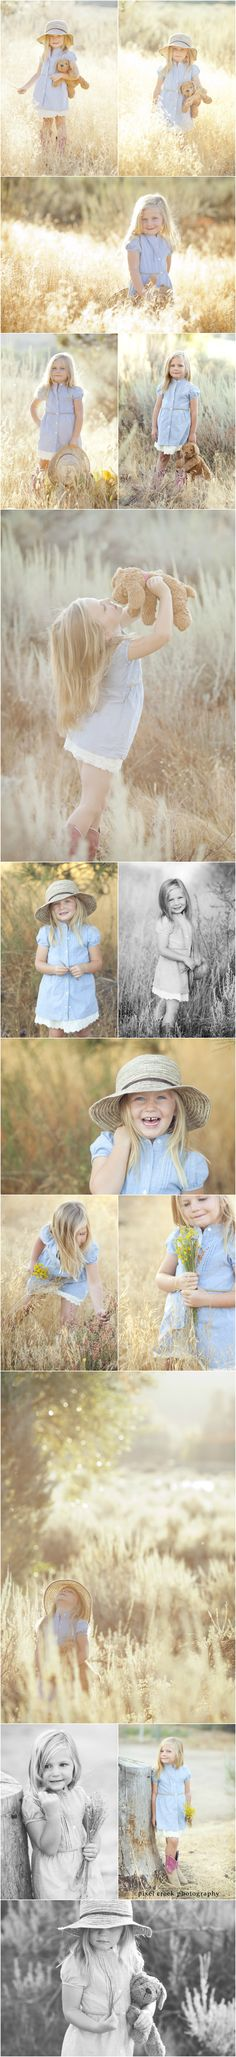 Little girl poses